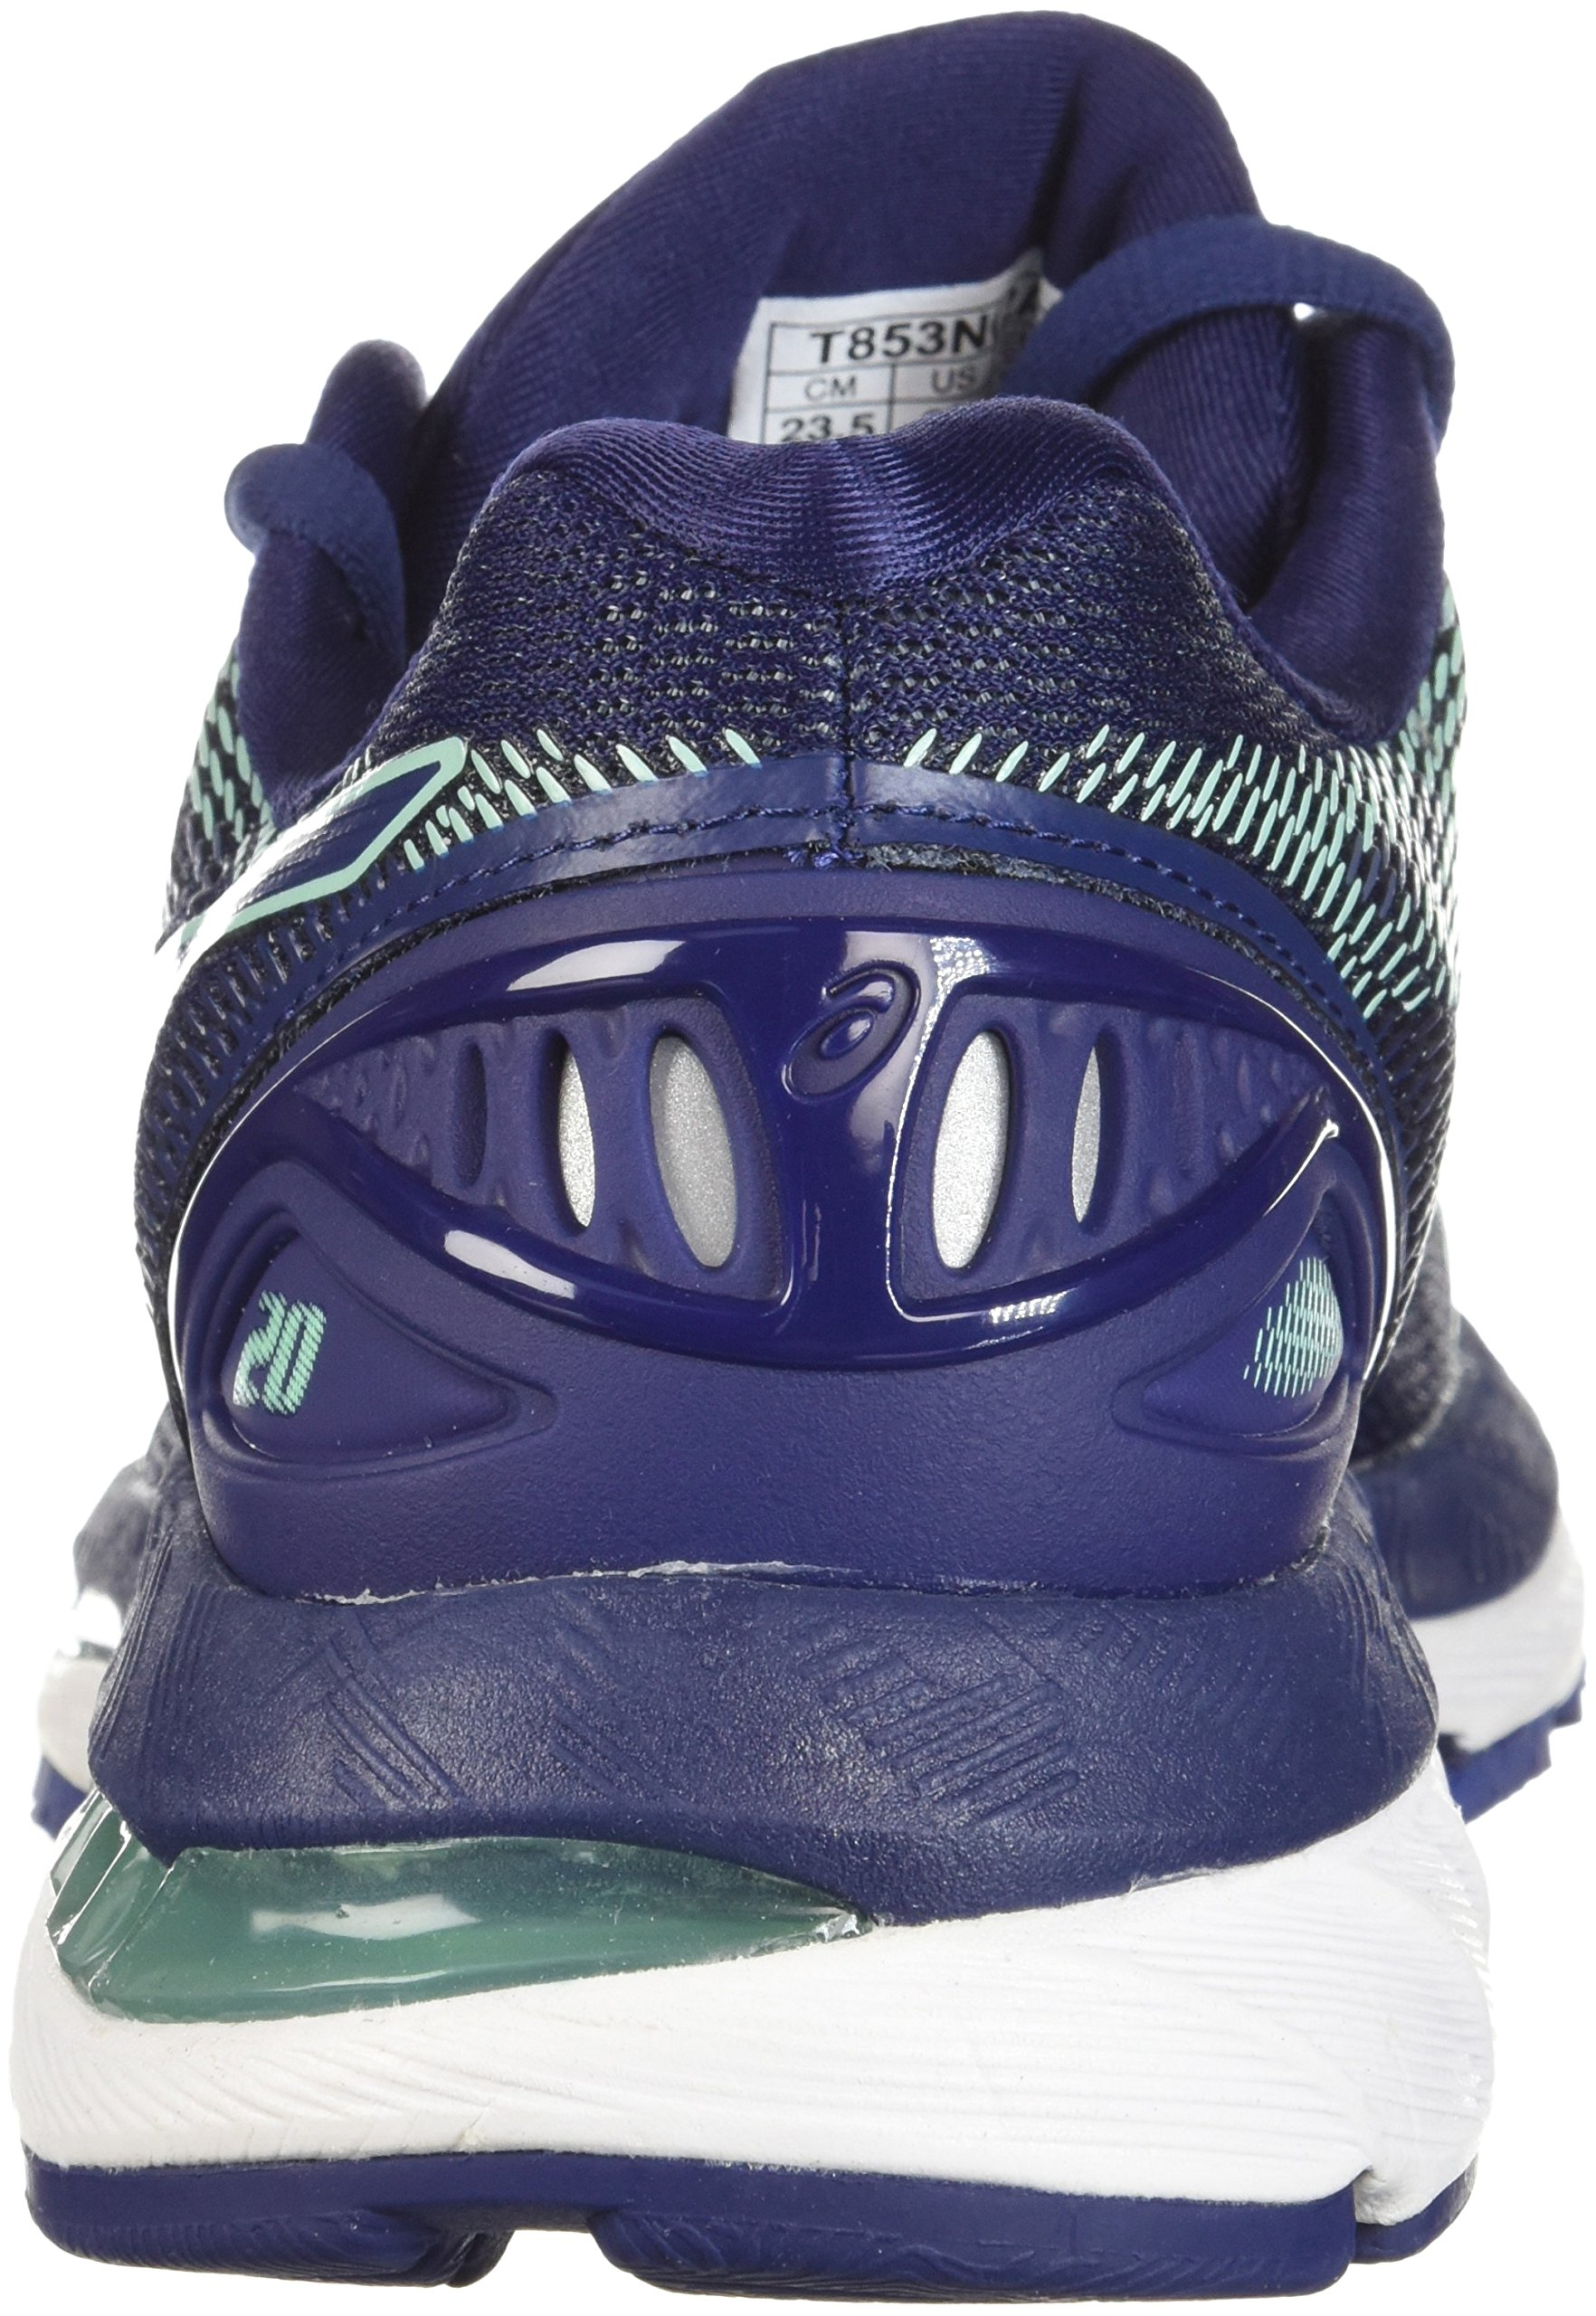 ASICS Women's Gel-Nimbus 20 Running Shoe, indigo blue/indigo blue/opal green, 12 D US by ASICS (Image #2)